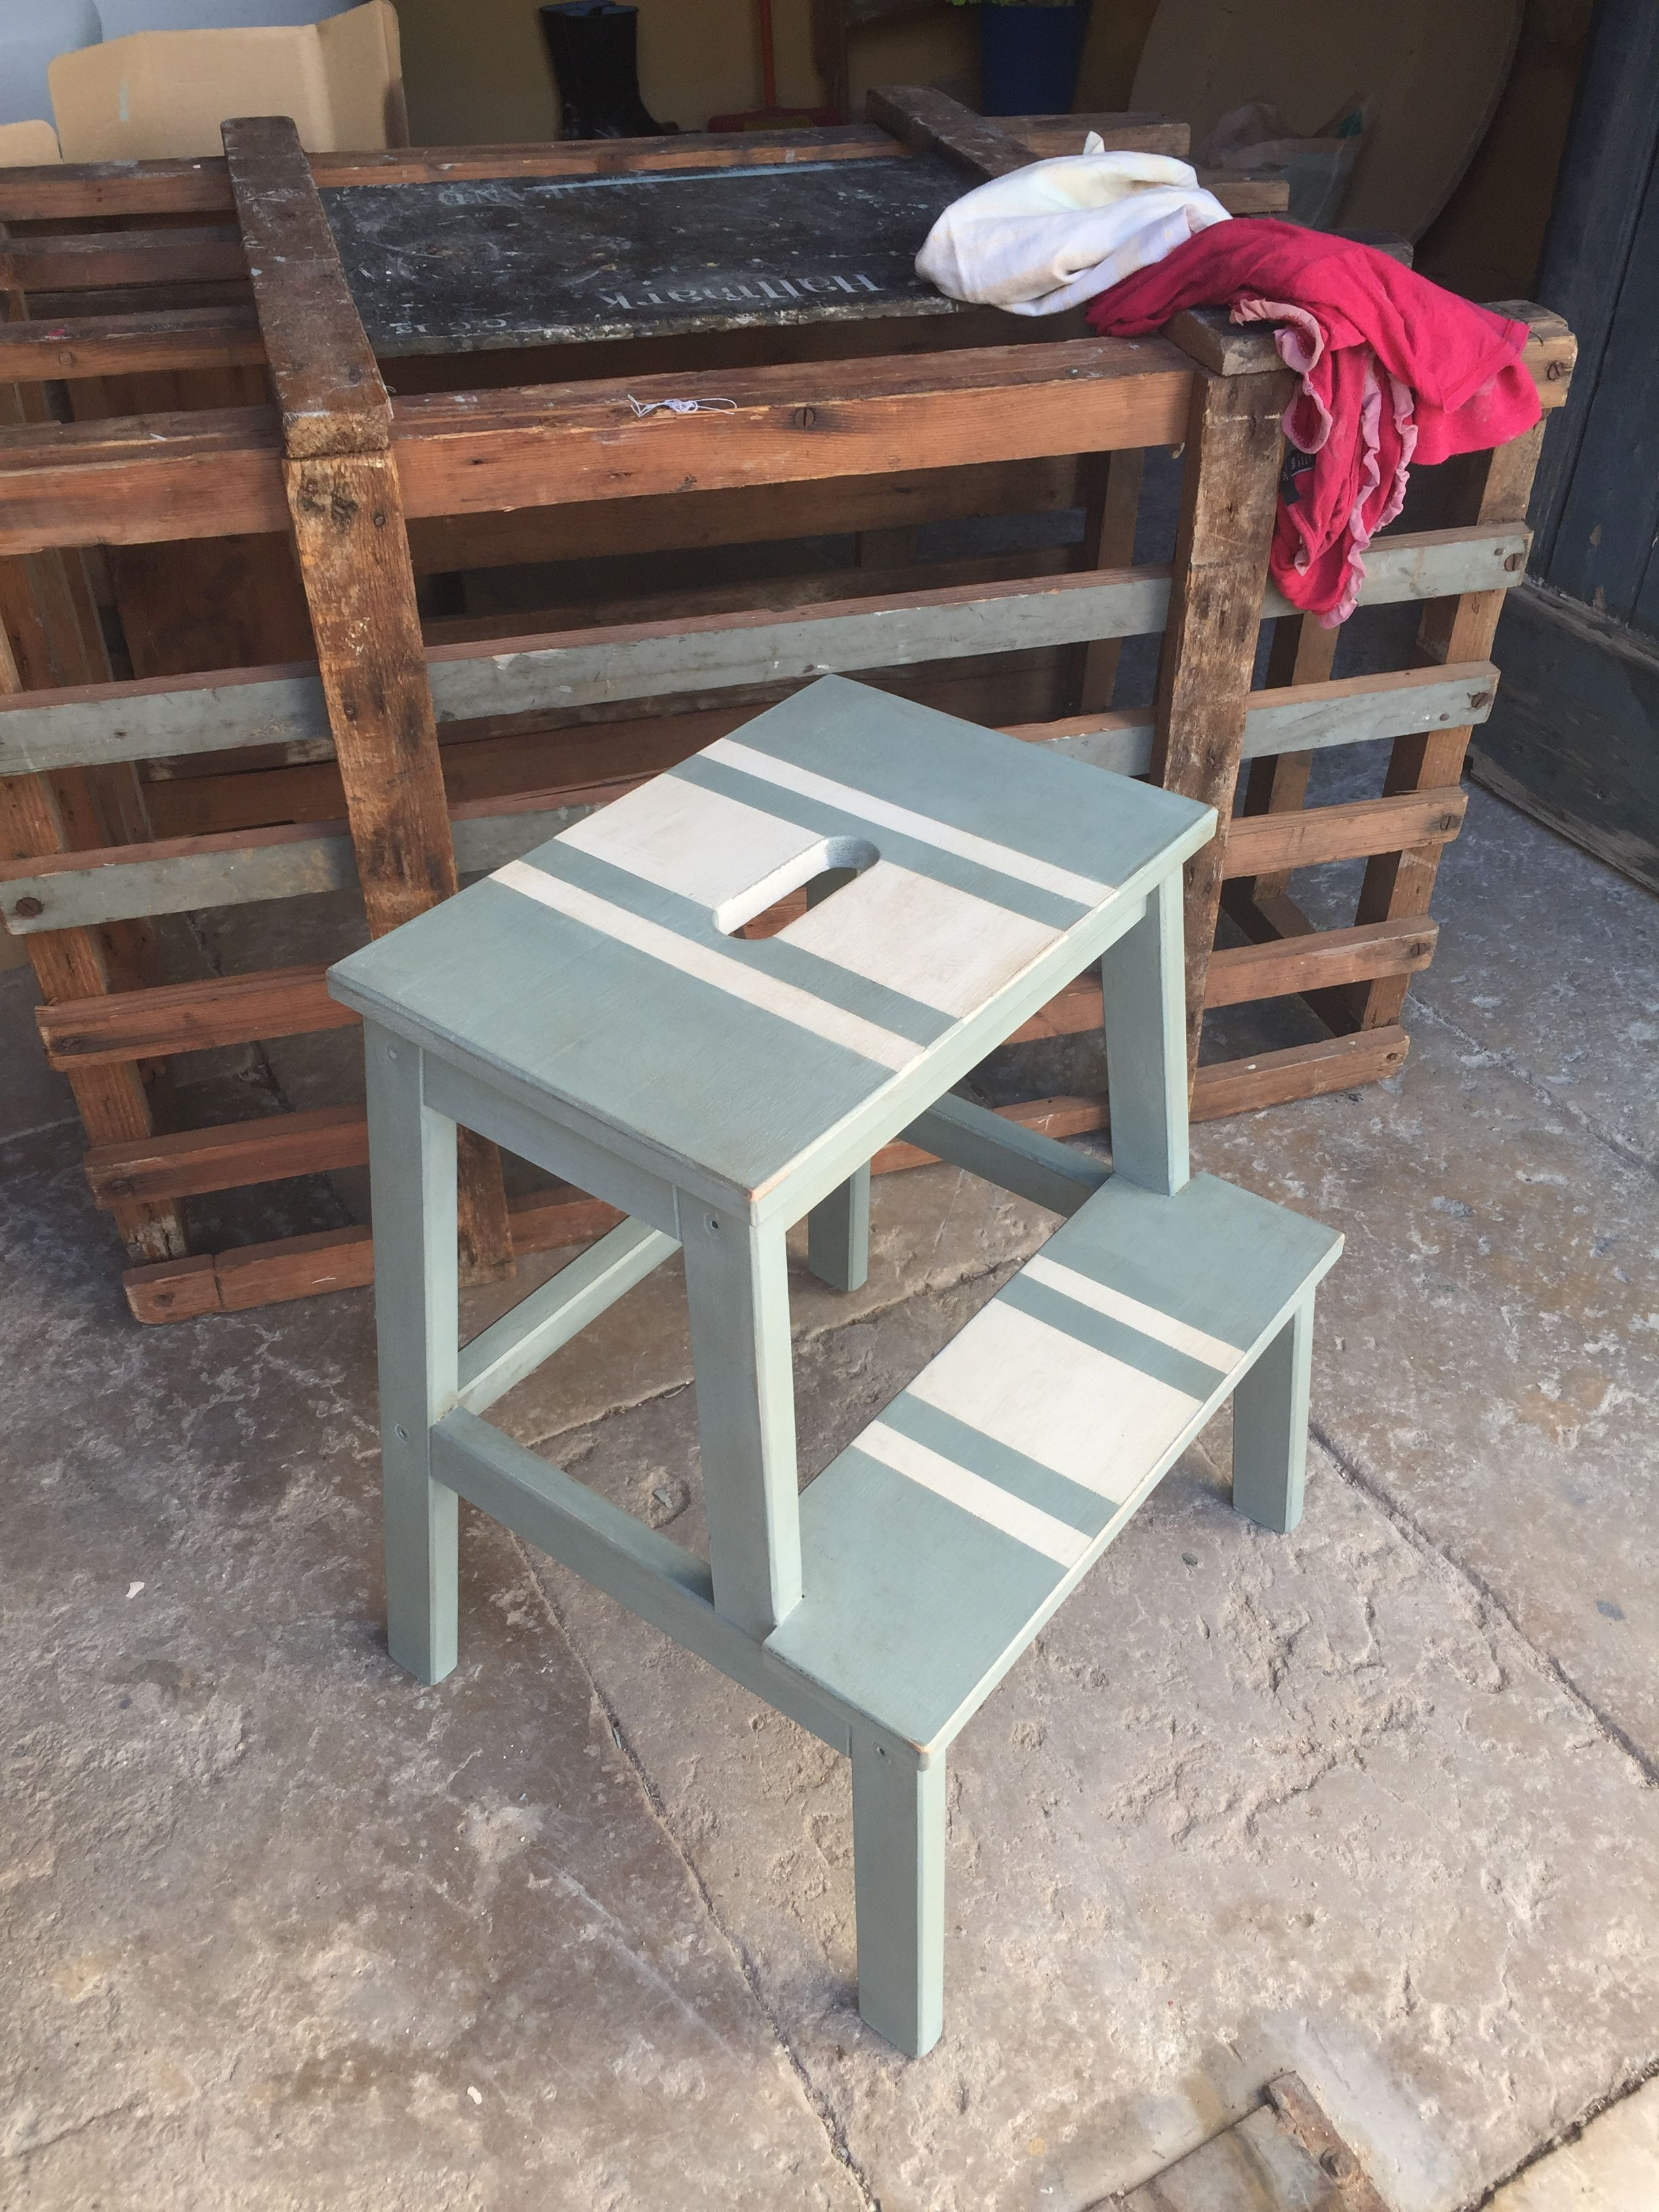 Ikea stool painted with annie sloan chalk paint must fix my